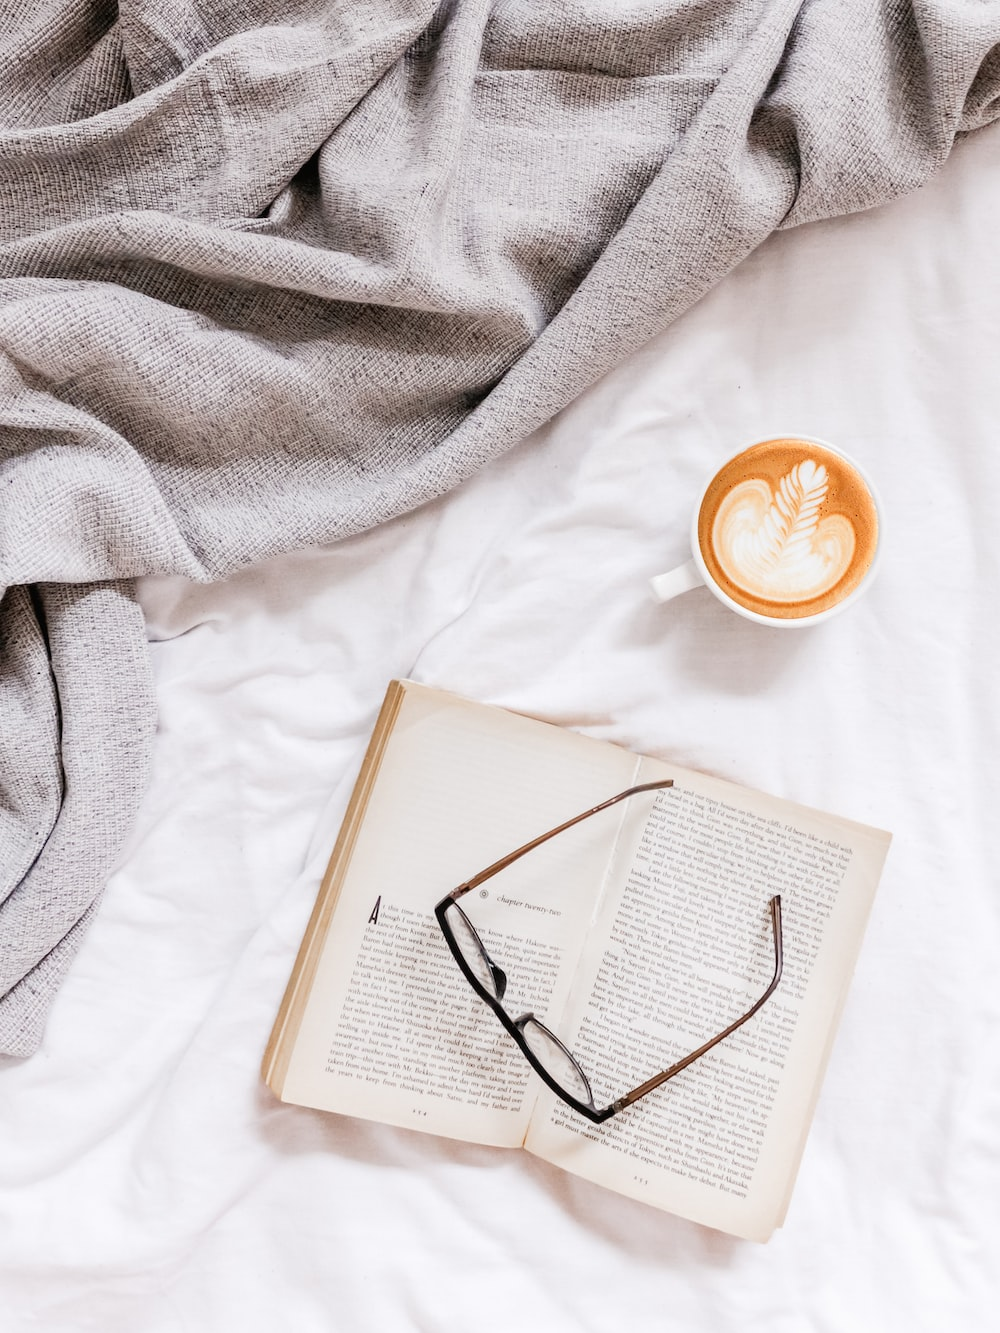 flat lay photography of eyeglasses on top of open book beside cup of coffee late